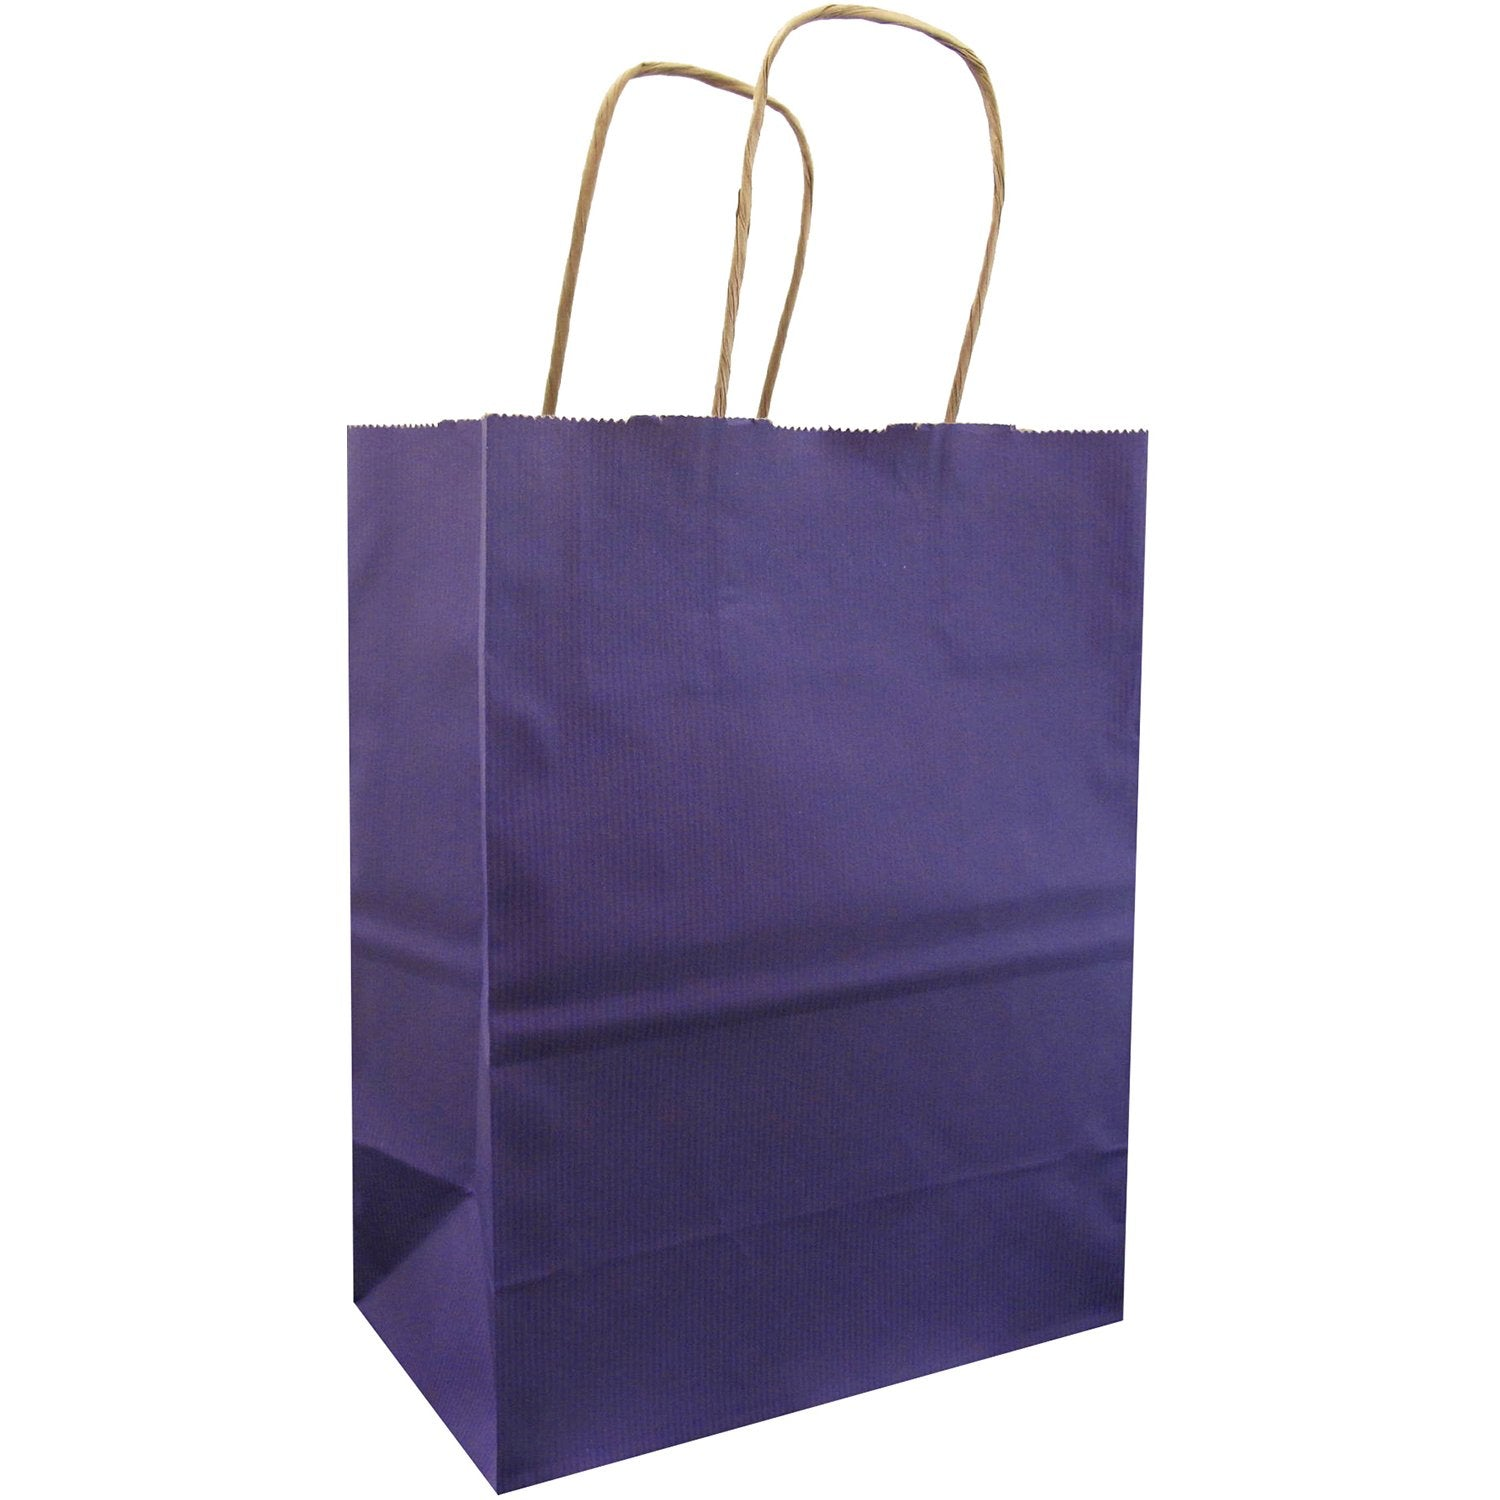 Jillson & Roberts Medium Kraft Bags, Purple